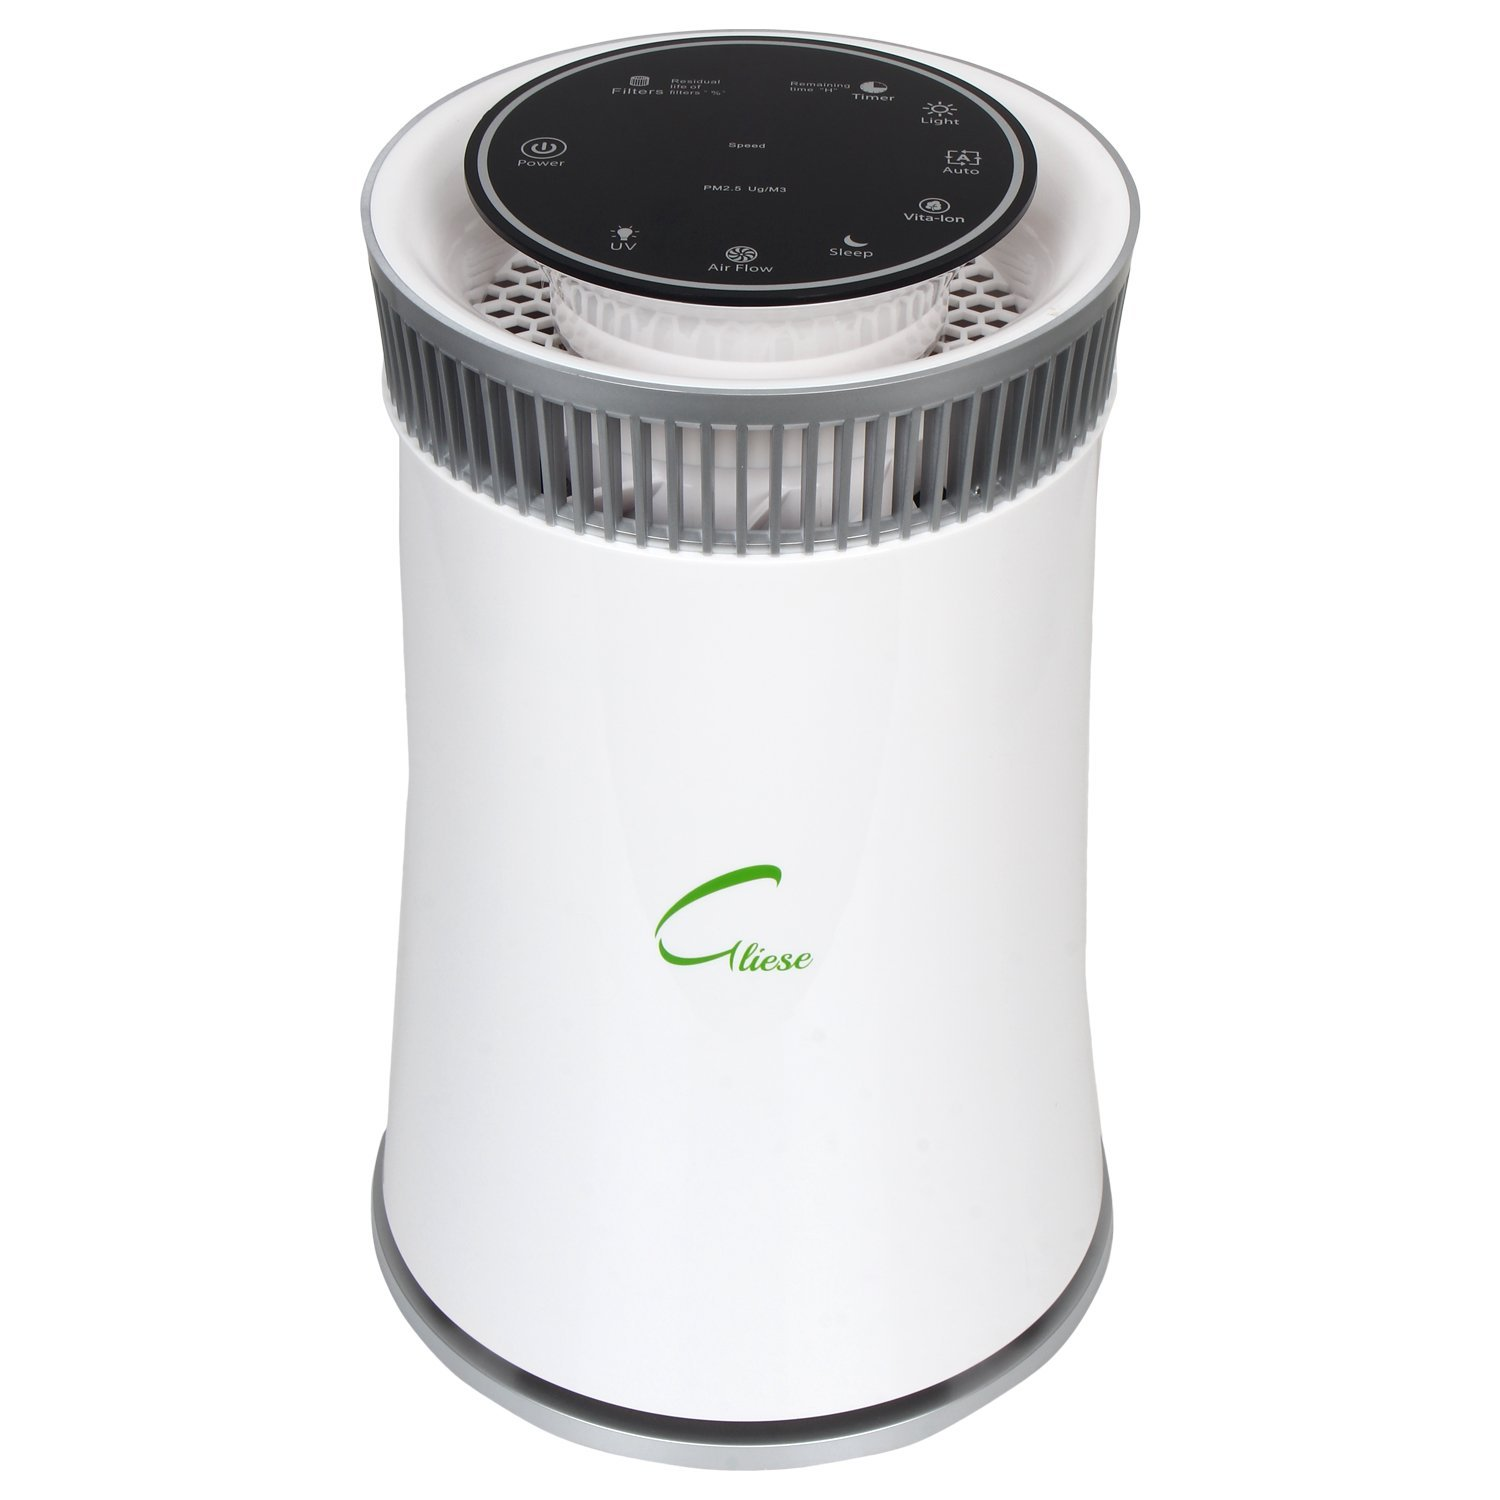 gliese-magic-24-watt-hepa-room-air-purifier